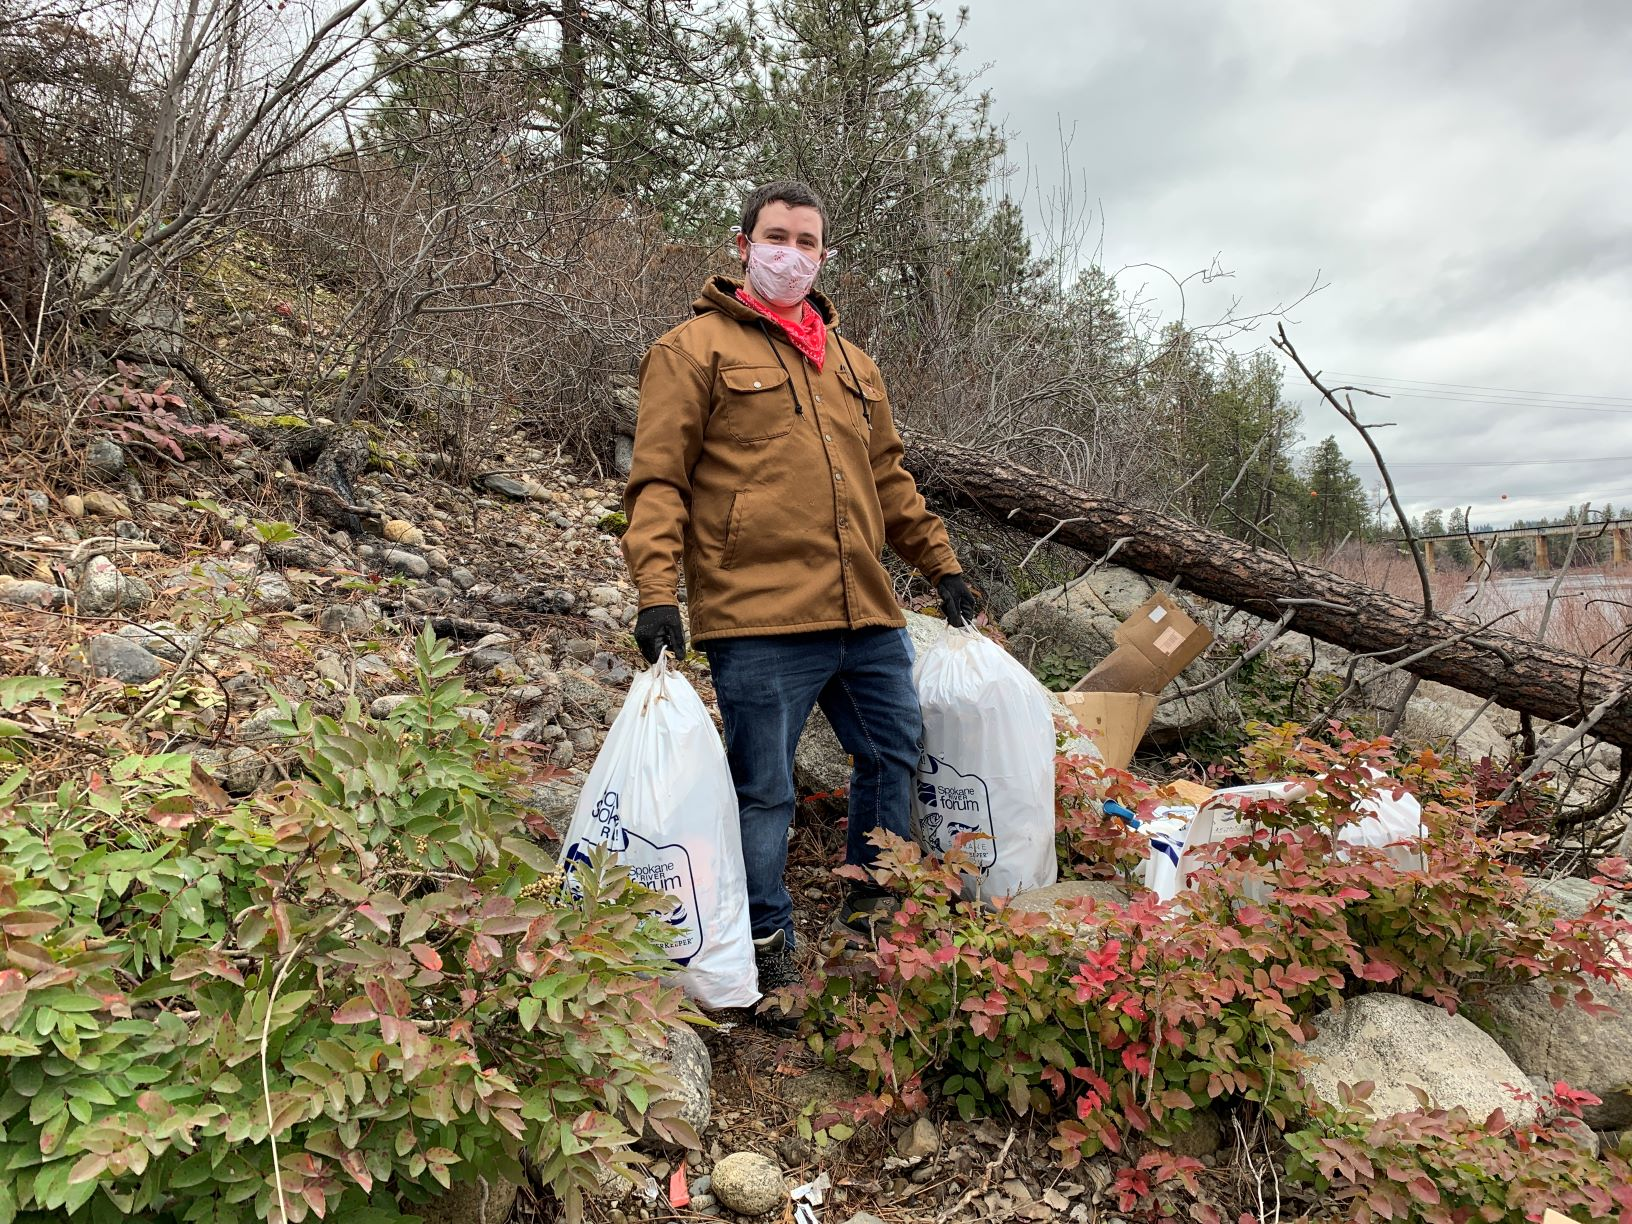 Man wearing a Carhart jacket, jeans, gloves, and facemask, carring two white plastic bags of litter and trash found along banks of the Spokane River.